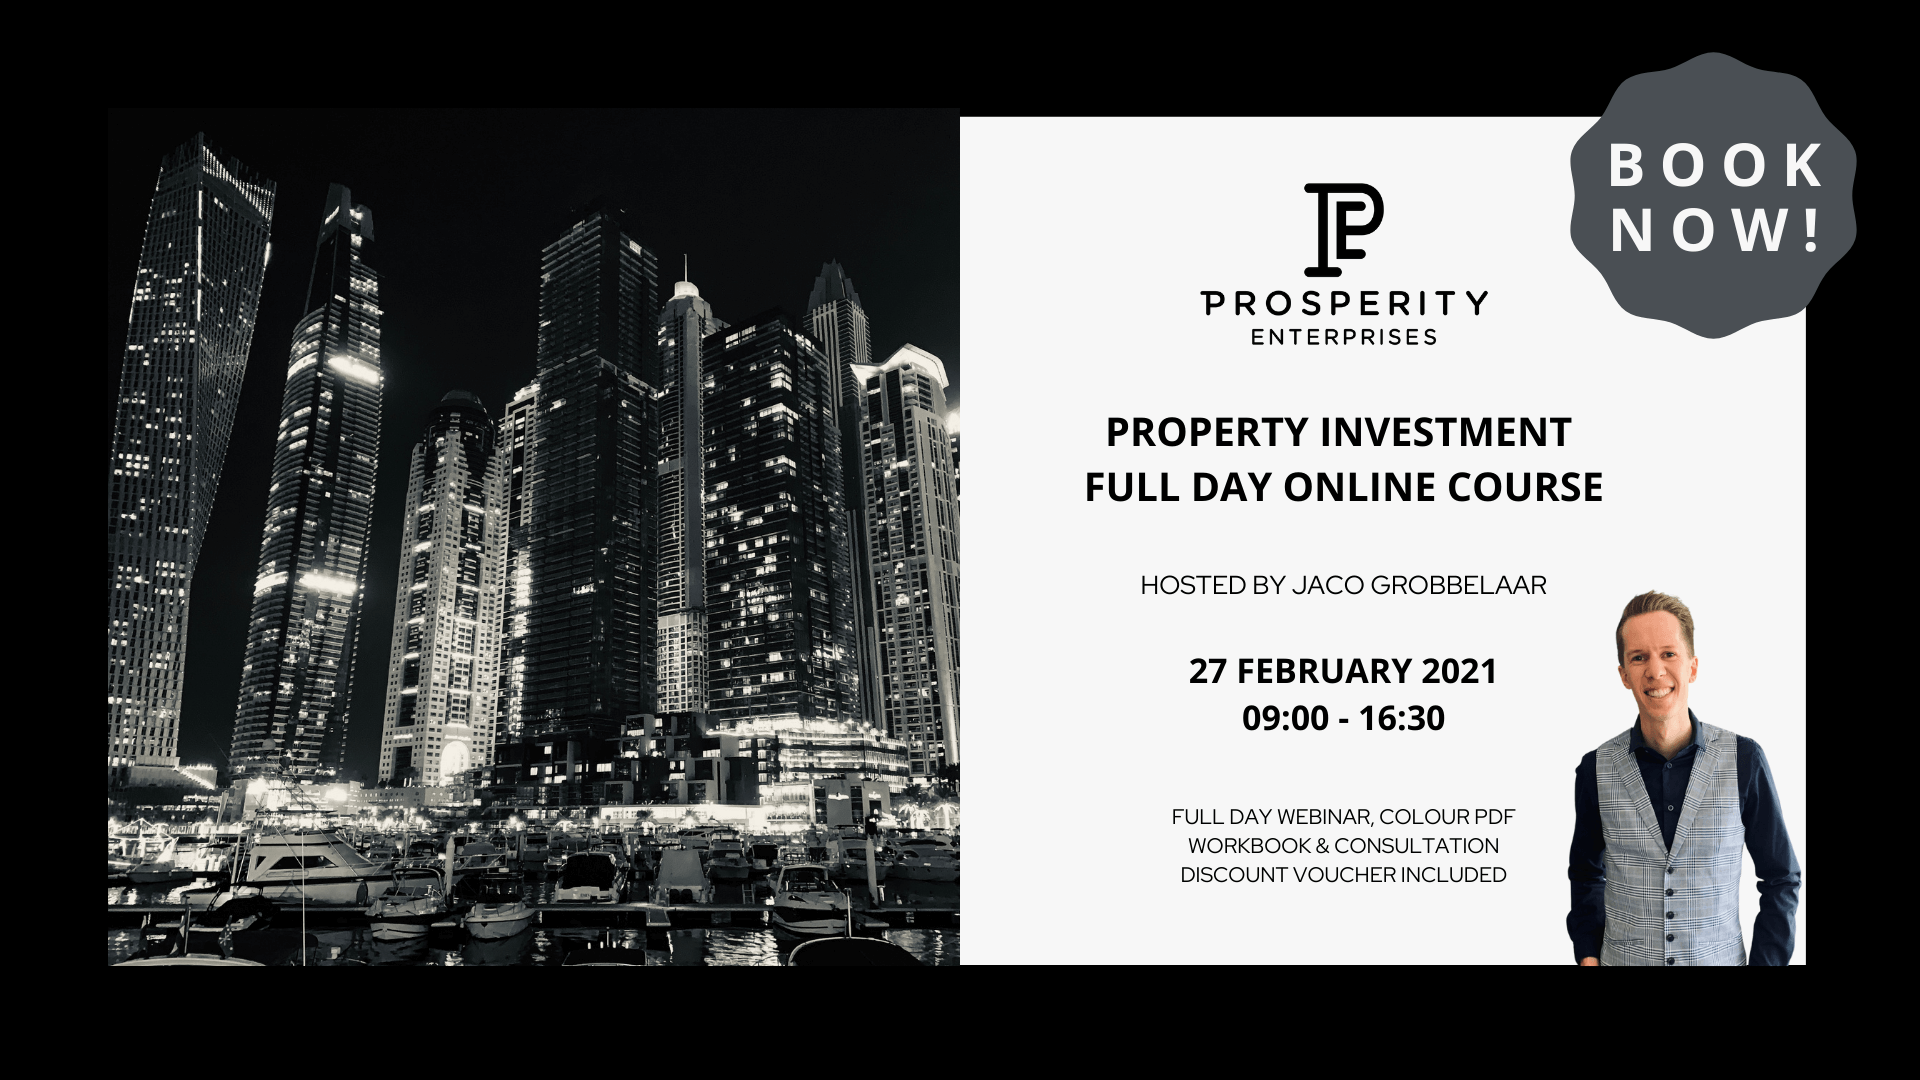 property-investment-online-seminar-course-february-2021